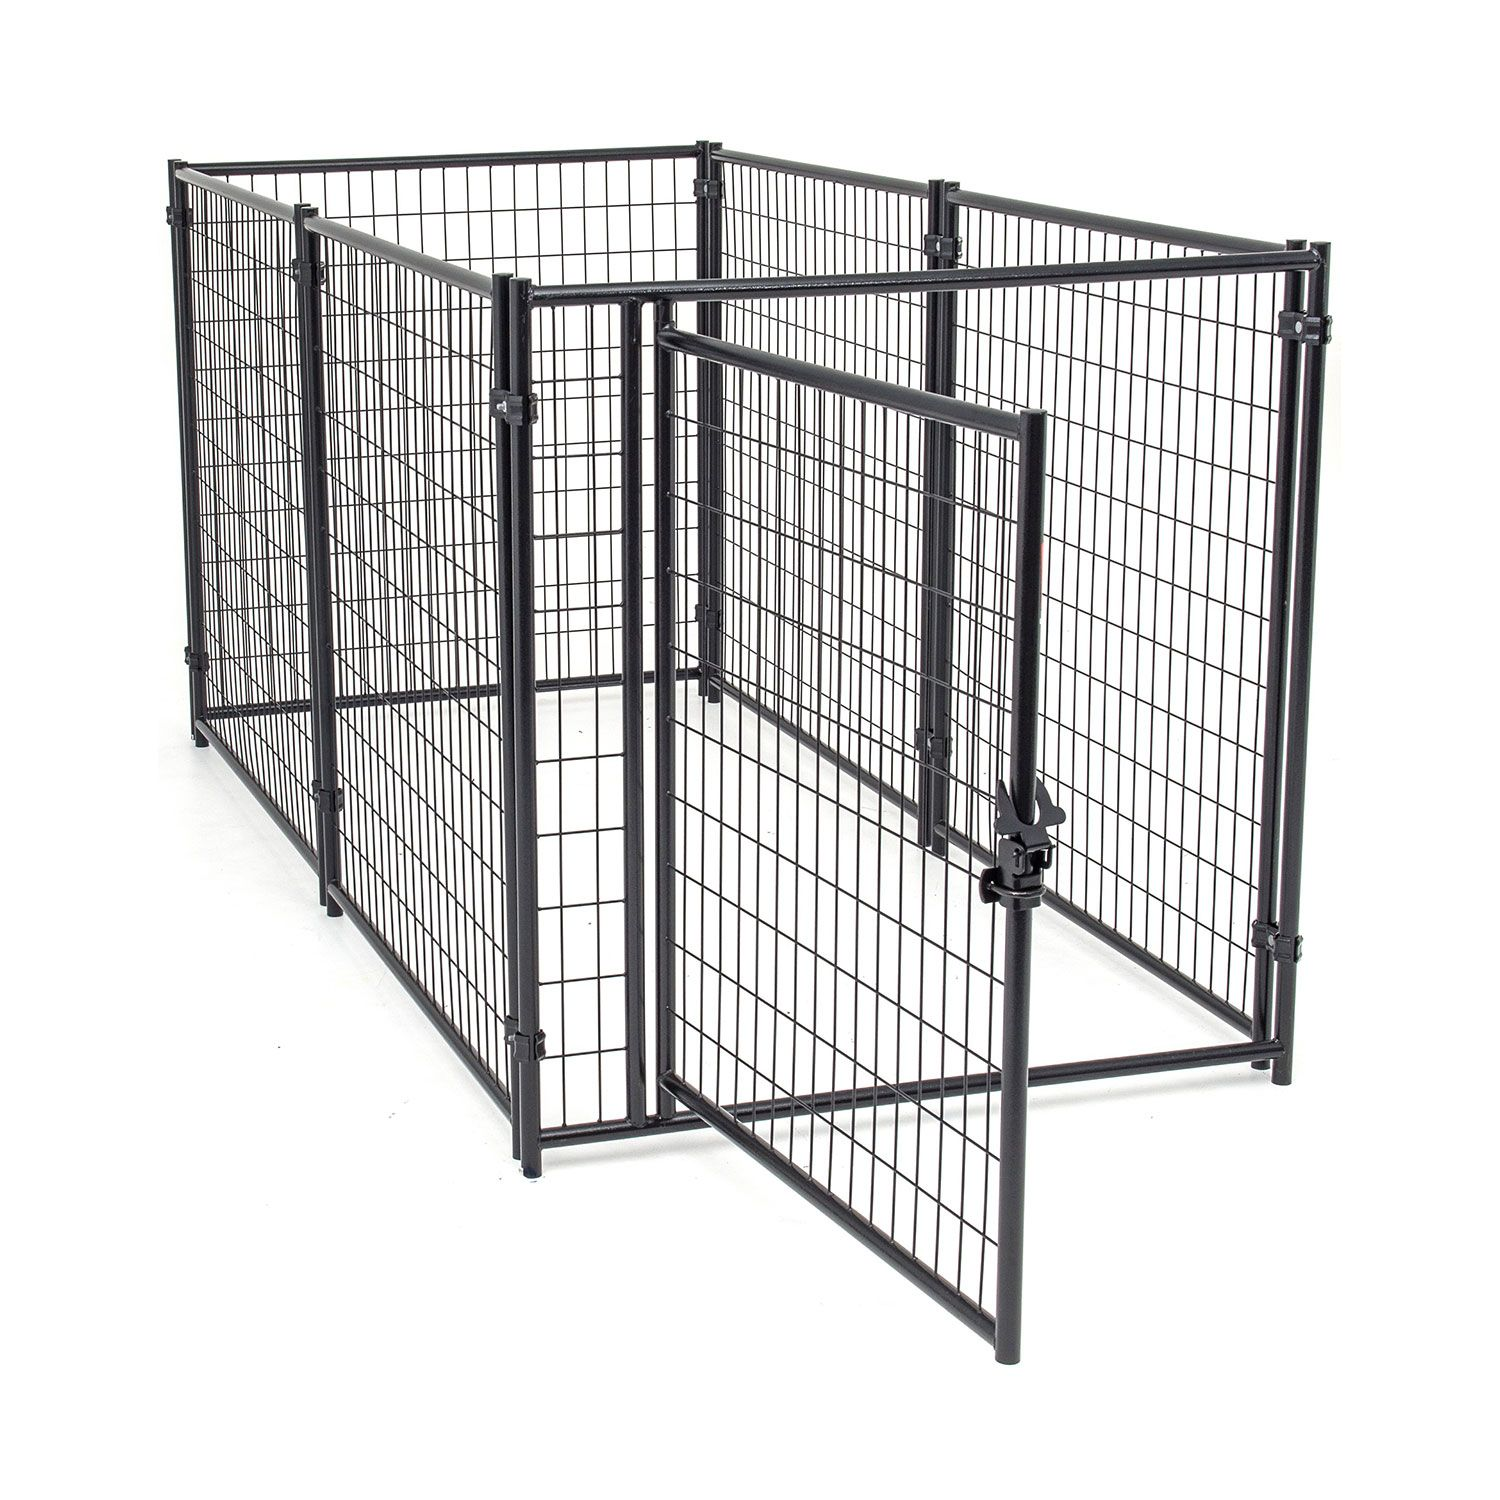 Jewett-Cameron Lucky Dog Black Welded Wire Kennel Panel Enclosure Kits